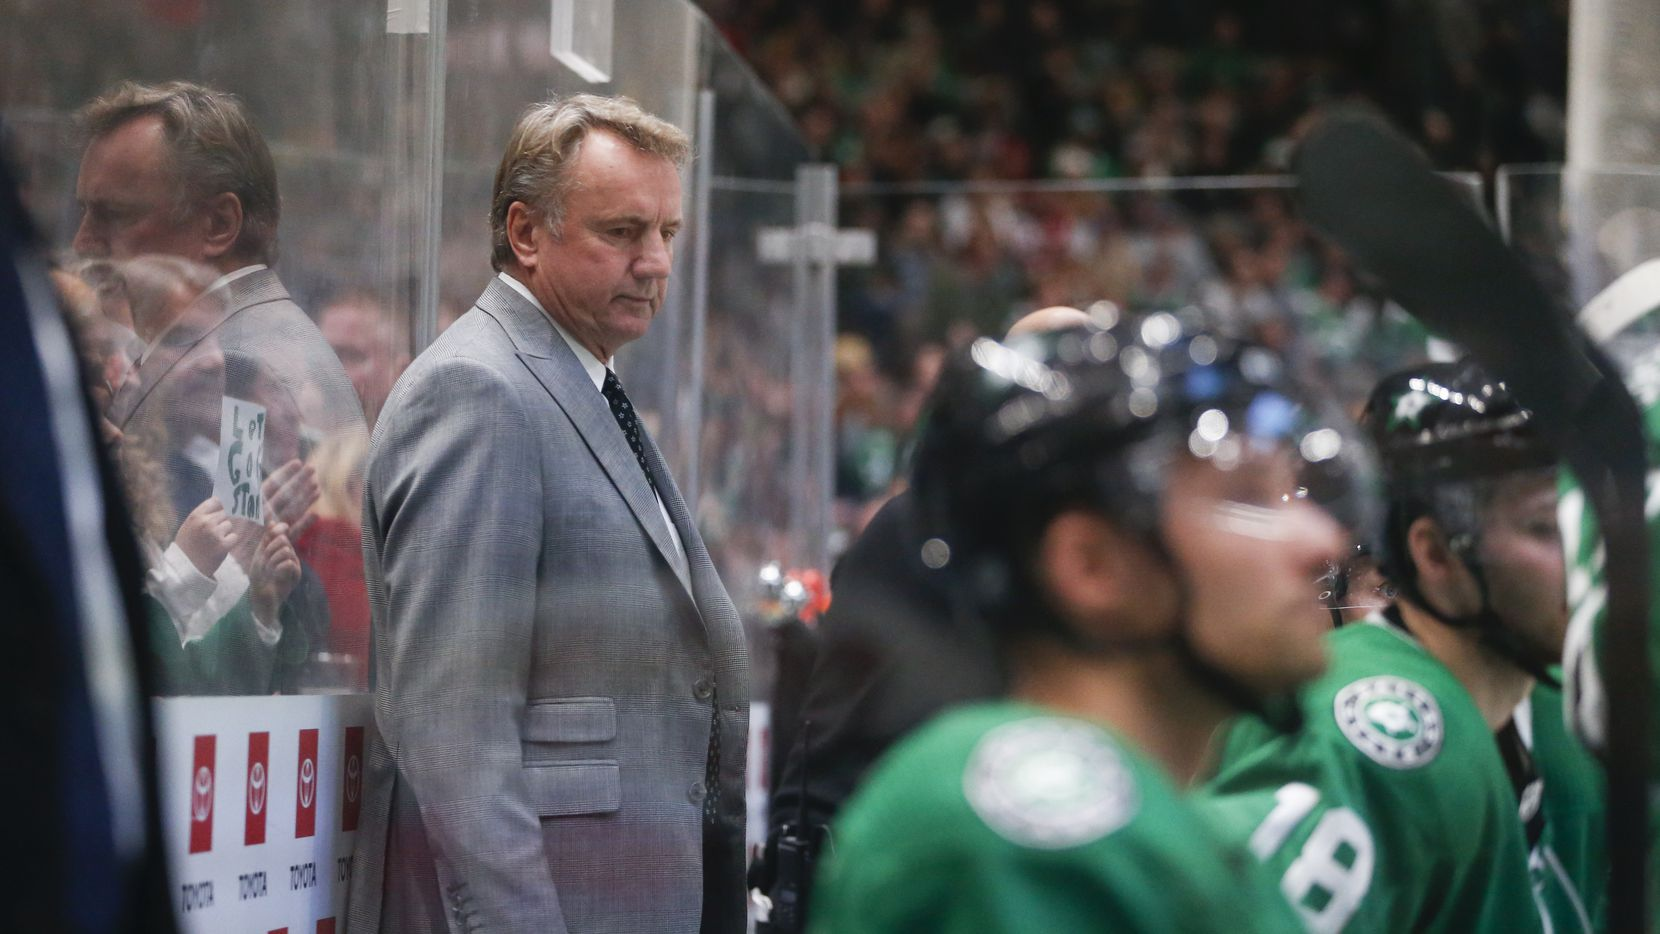 Dallas Stars interim head coach Rick Bowness is seen during the second period of a National Hockey League match between the Dallas Stars and the New Jersey Devils on Tuesday, Dec. 10, 2019 at American Airlines Center in Dallas.